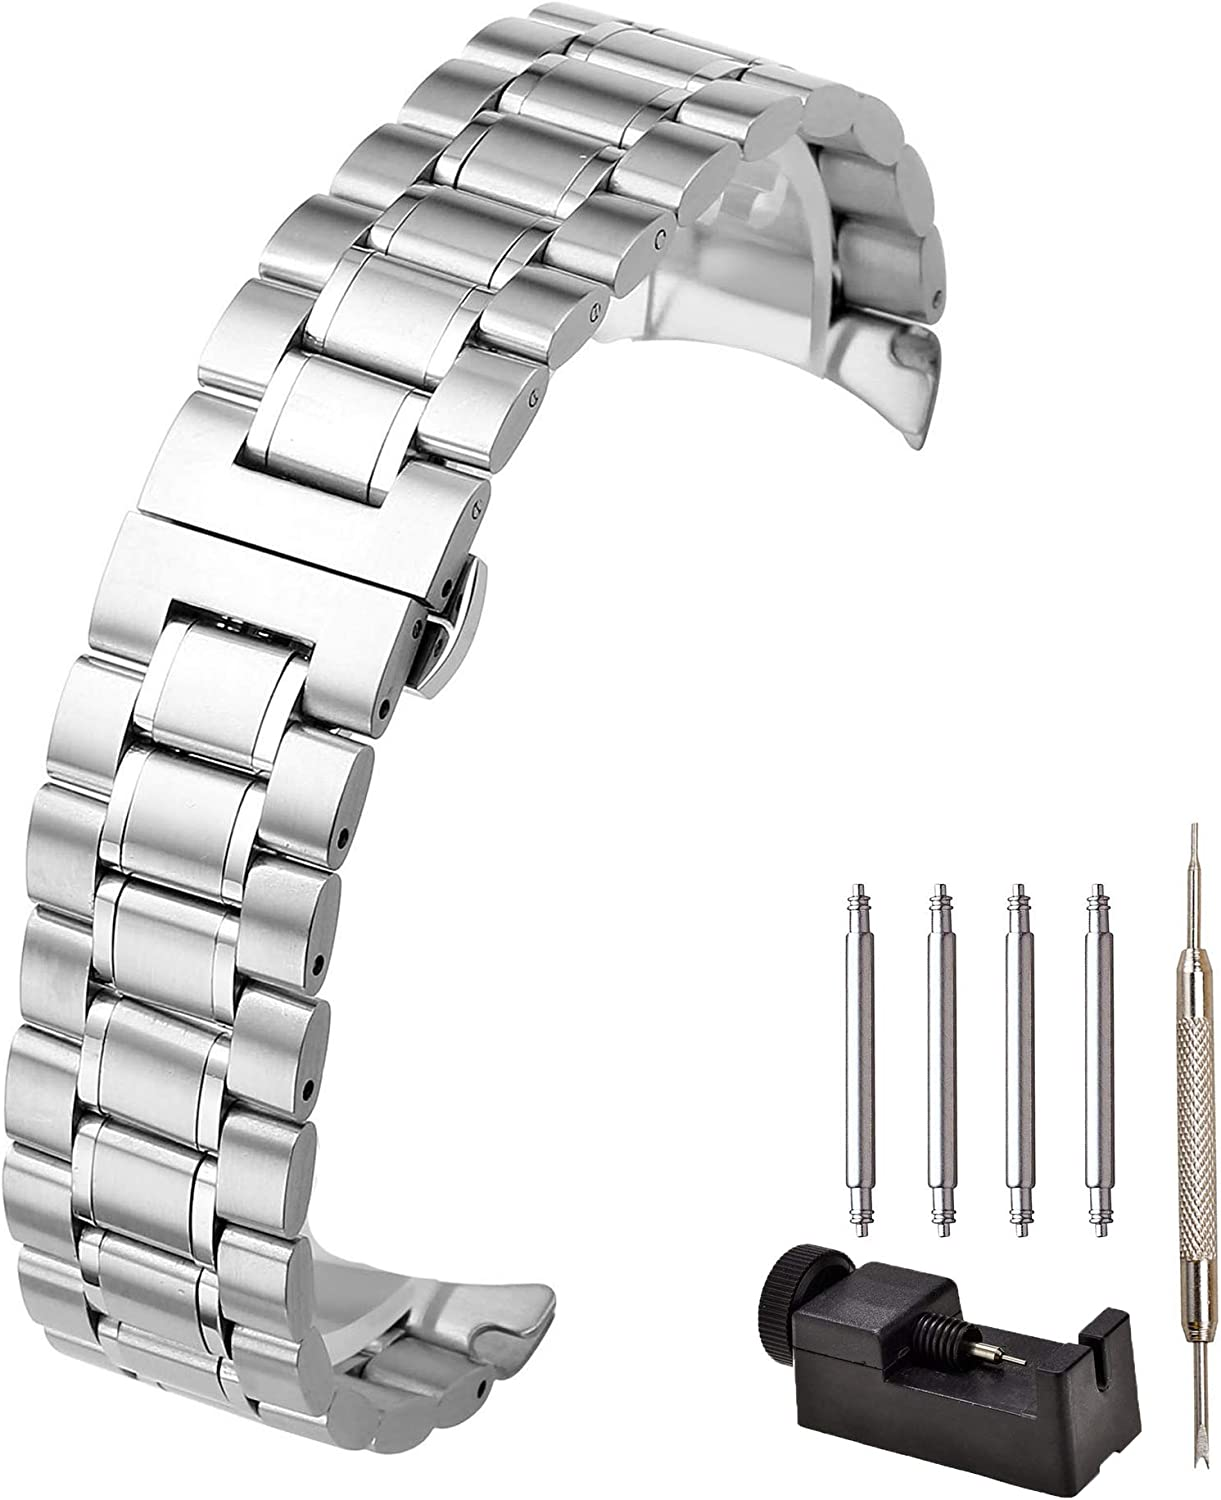 JSDDE Solid Stainless Steel Curved End Link Bracelet Wrist Watch Band Strap Replacement Butterfly Deployant Buckle Double Push Spring Deployment Clasp